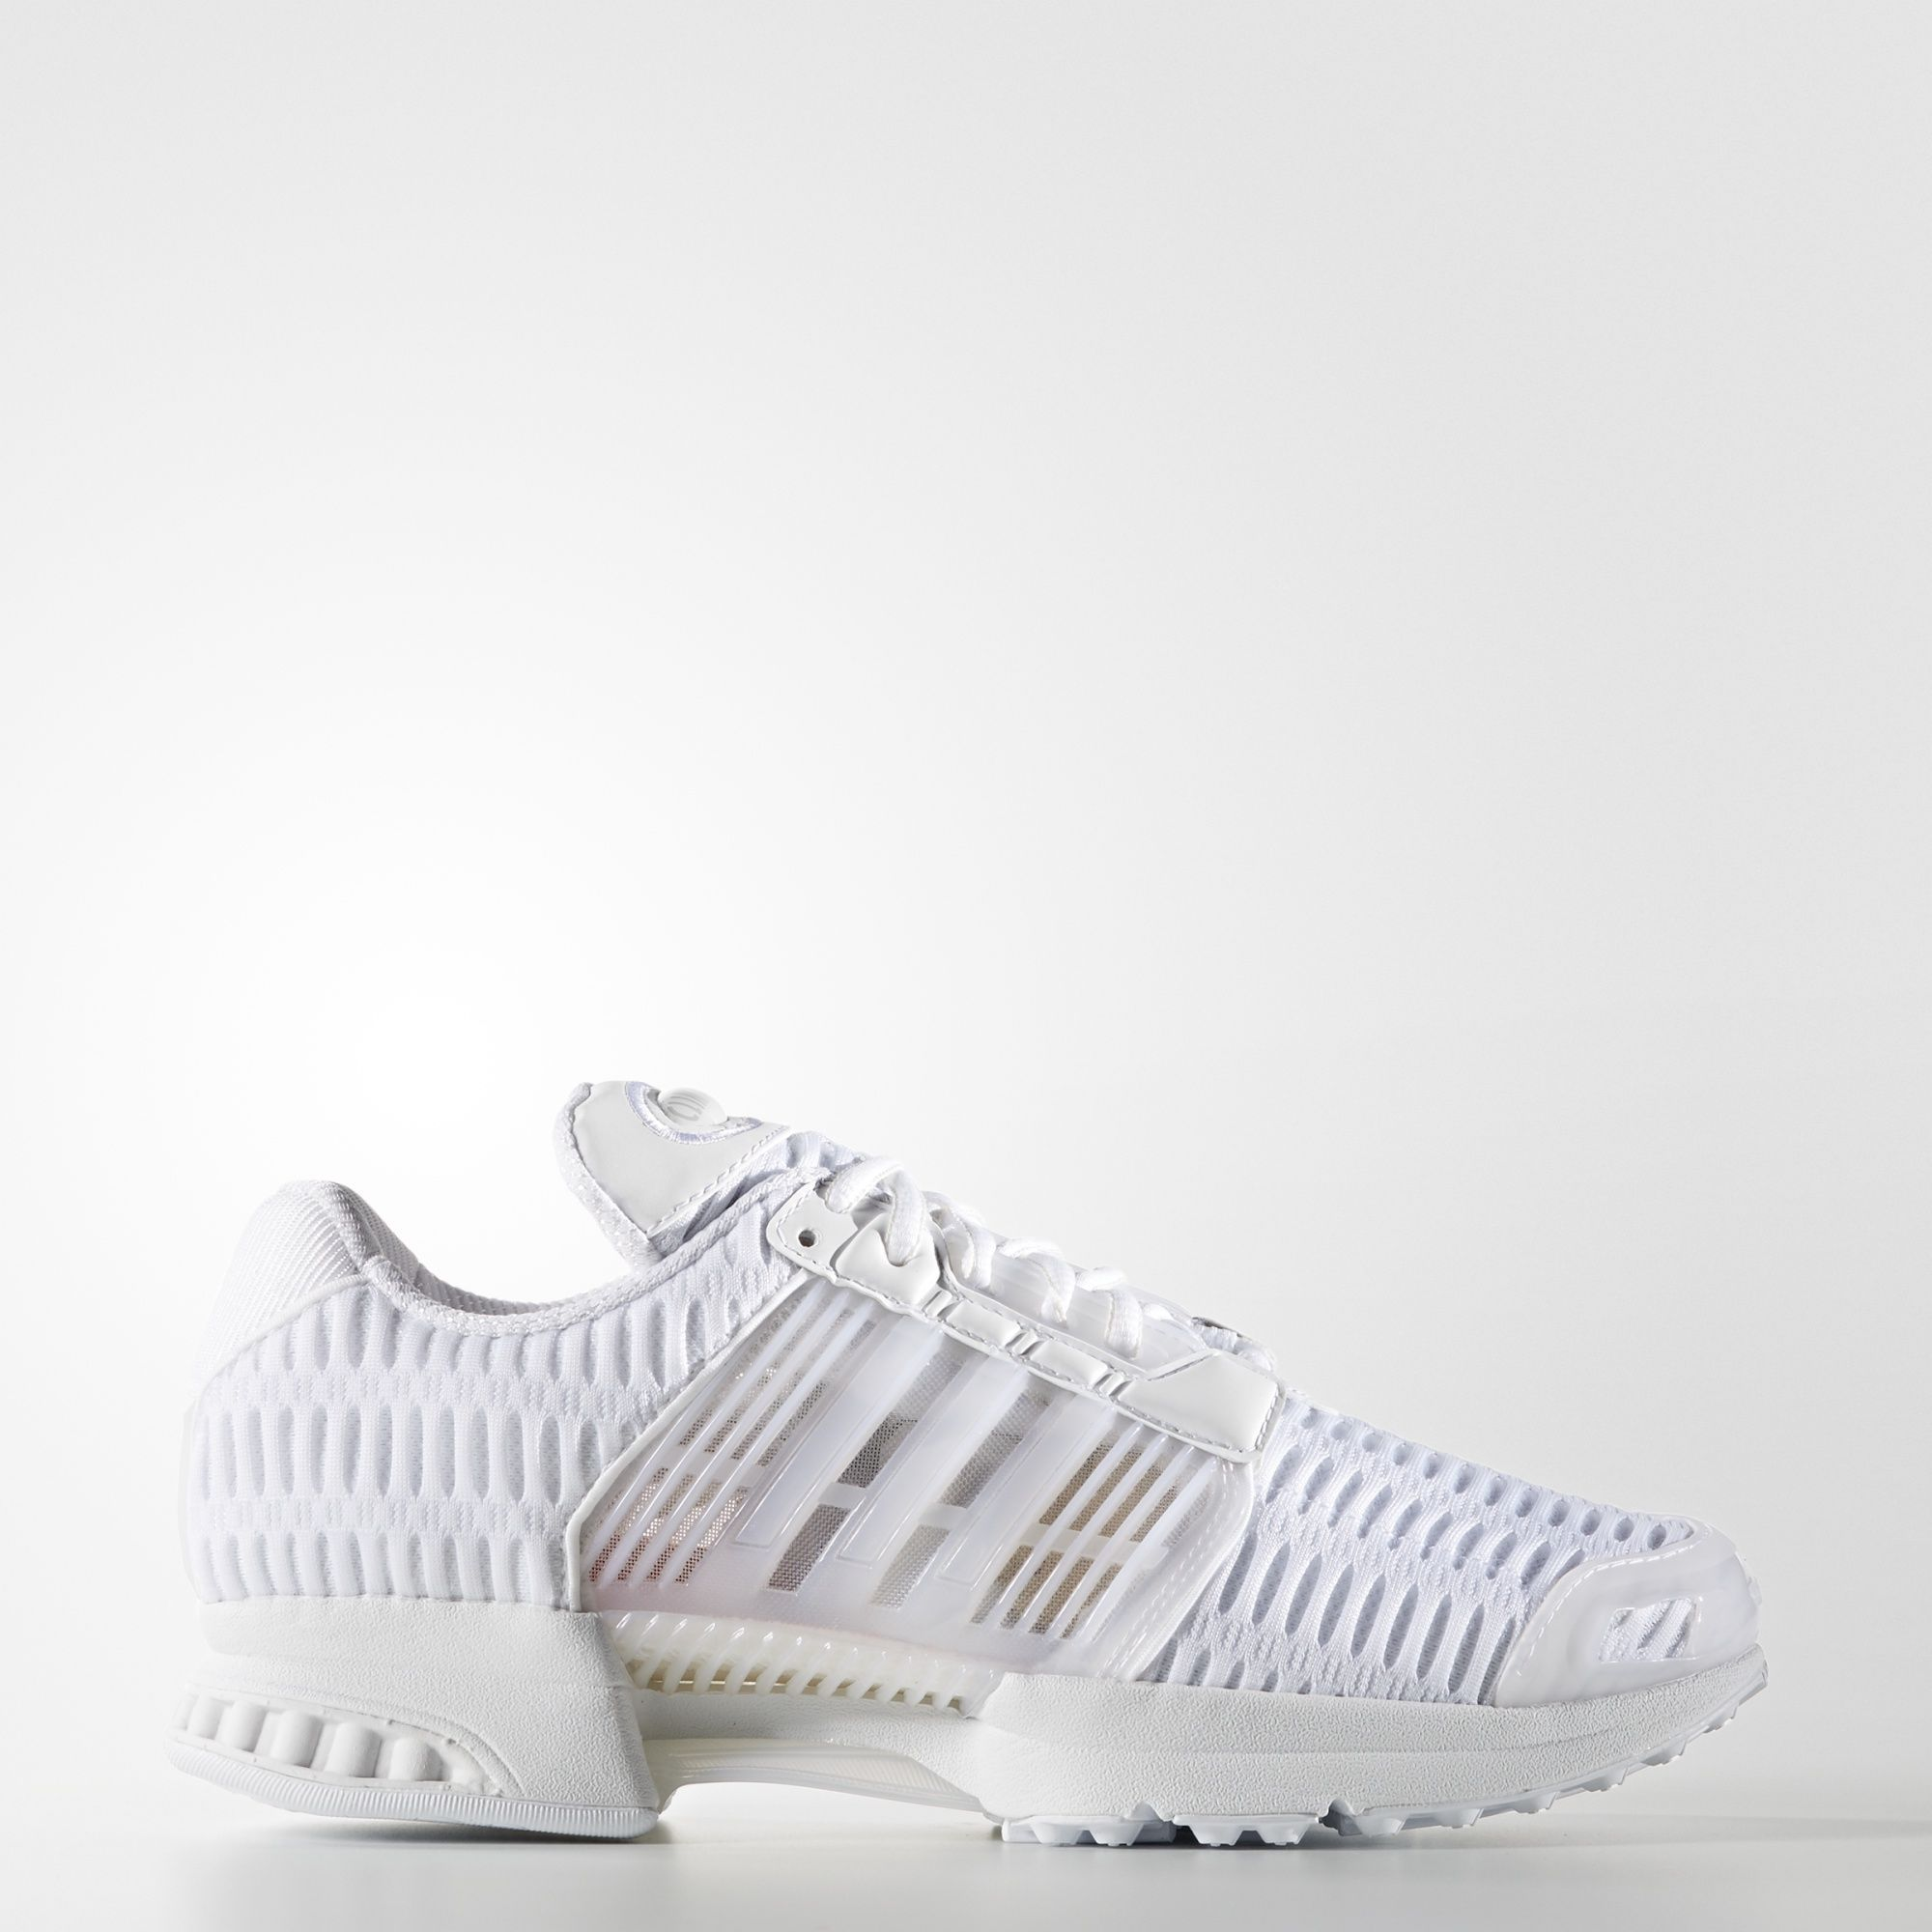 adidas climacool shoes black and white